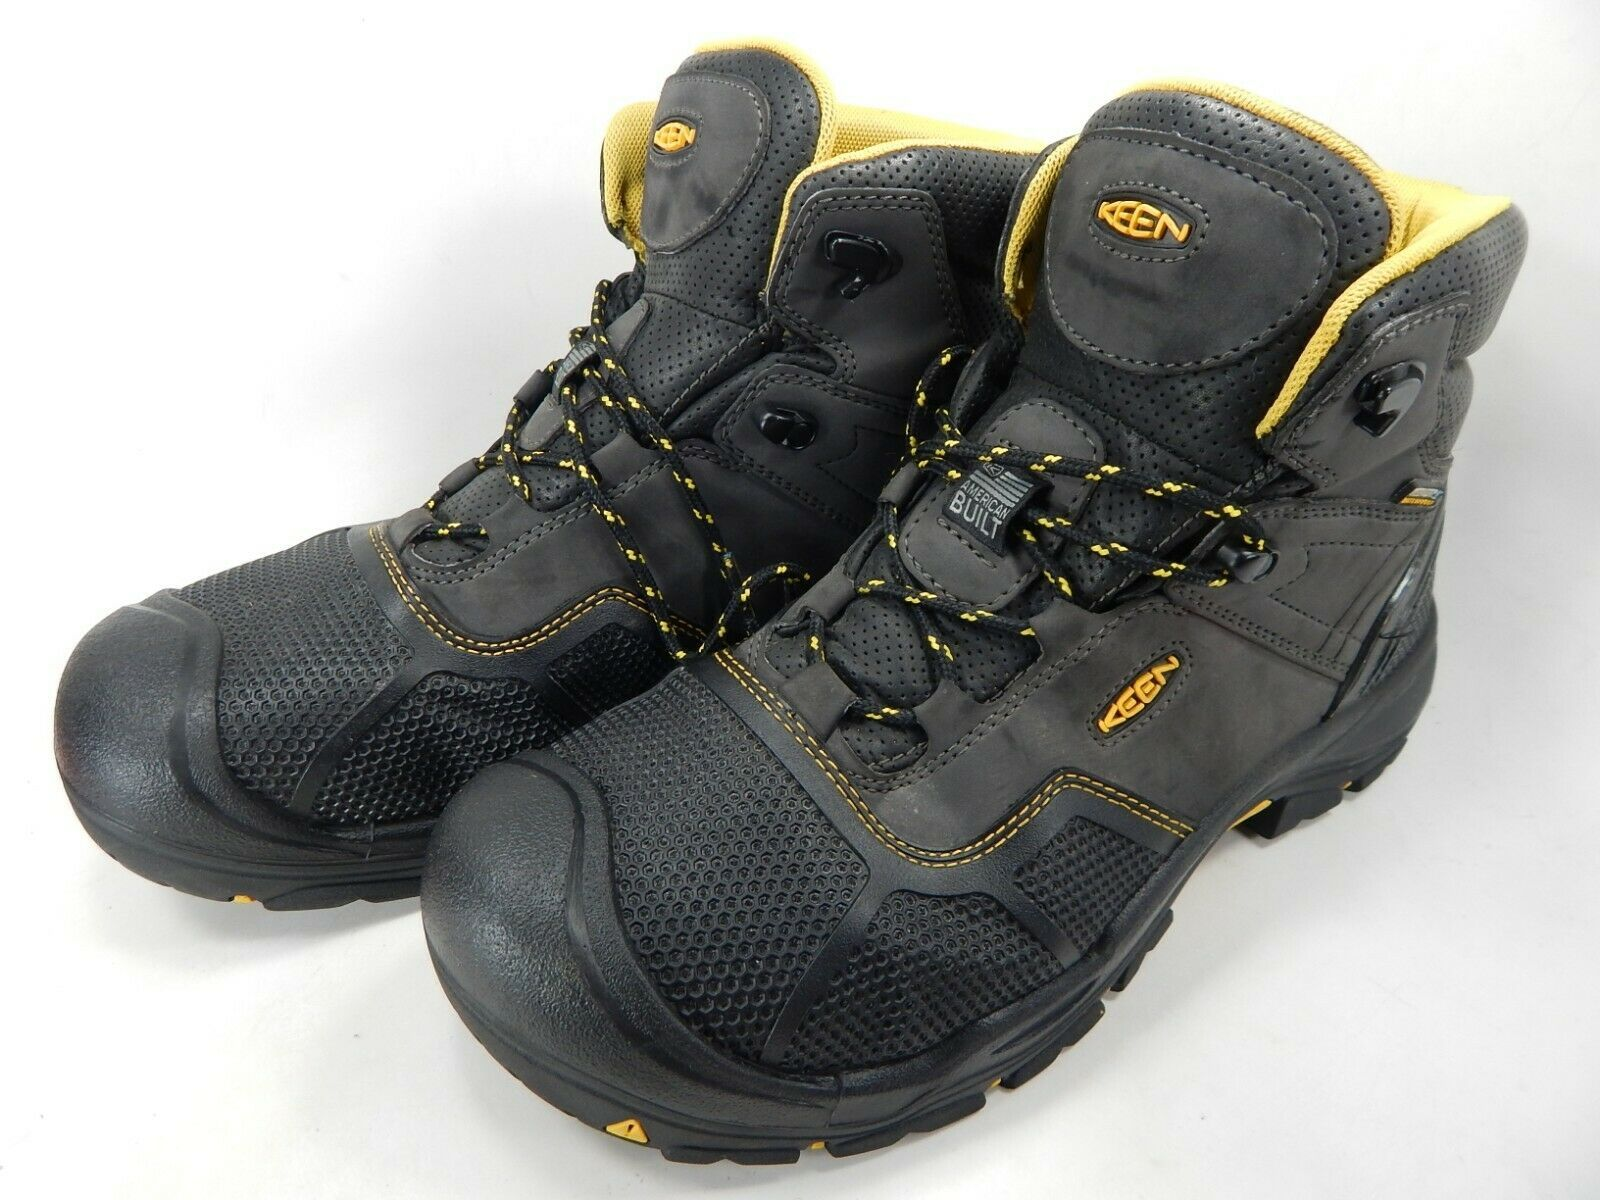 Keen Logandale Size 13 M (D) EU 47 Men's WP Steel Toe Work Boots Black 1017828